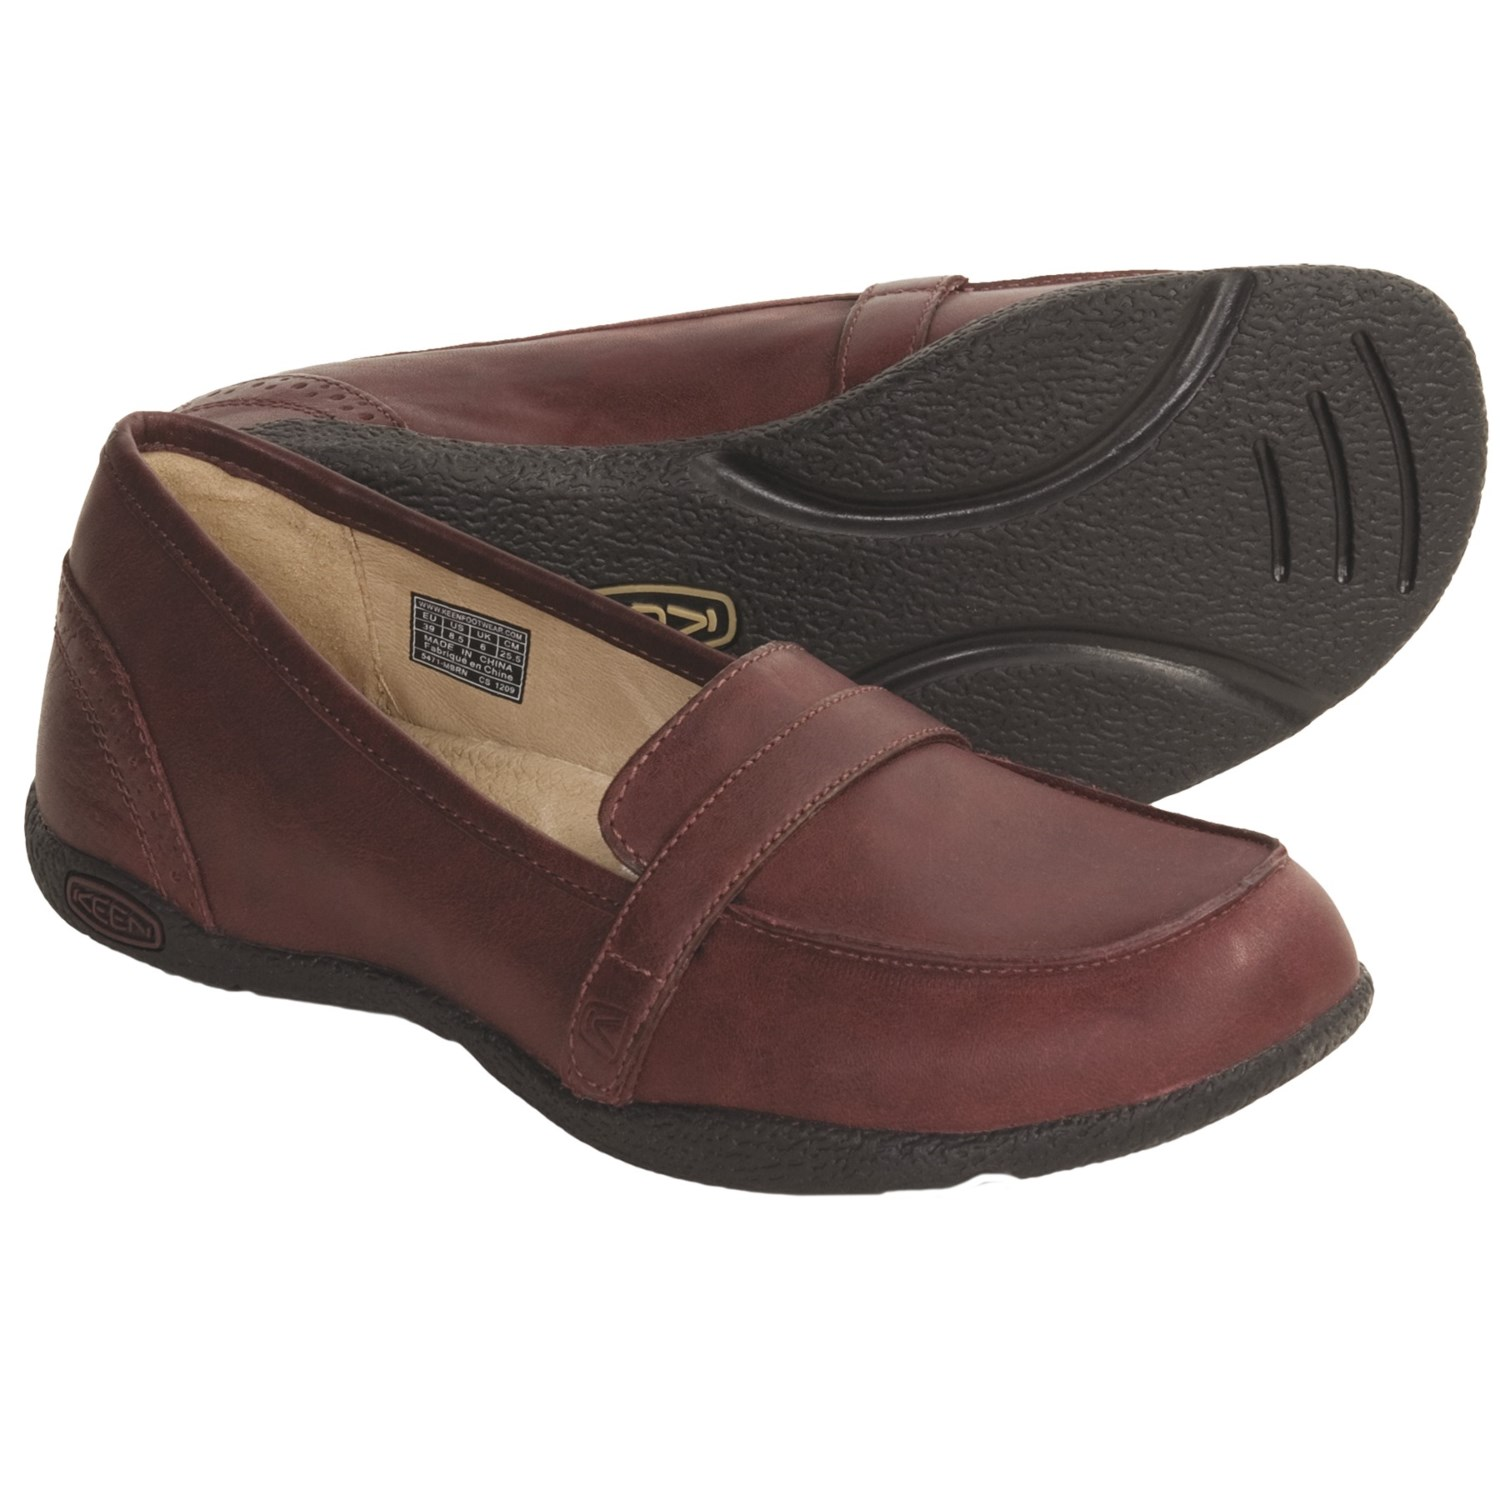 Womens Shoes Loafers